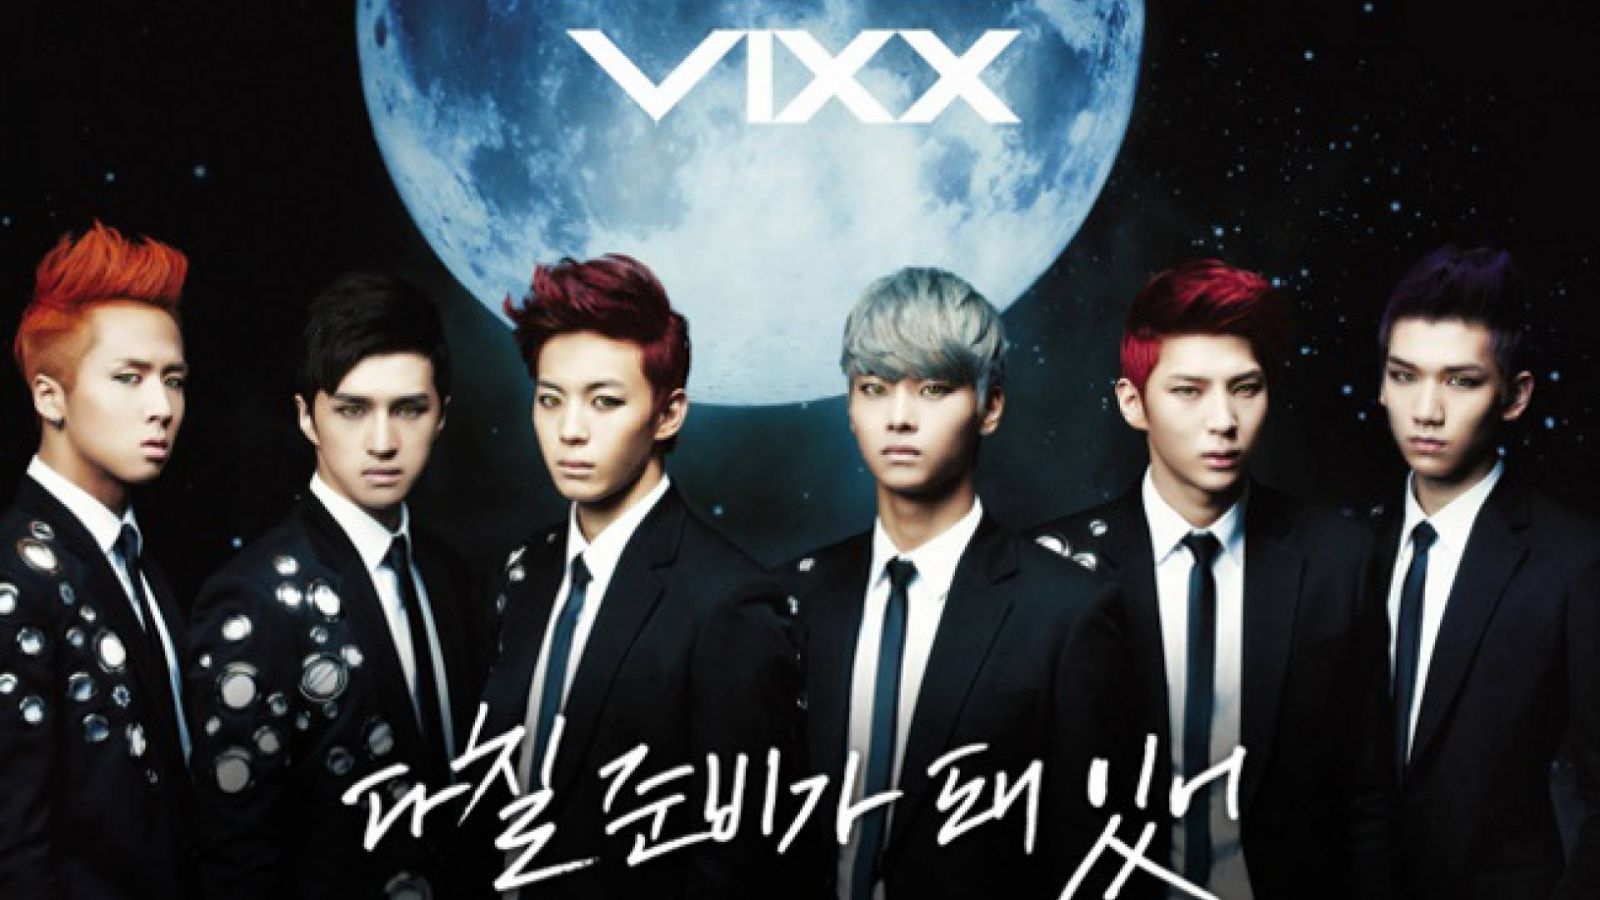 Teaser du nouveau clip de VIXX © Jellyfish Entertainment